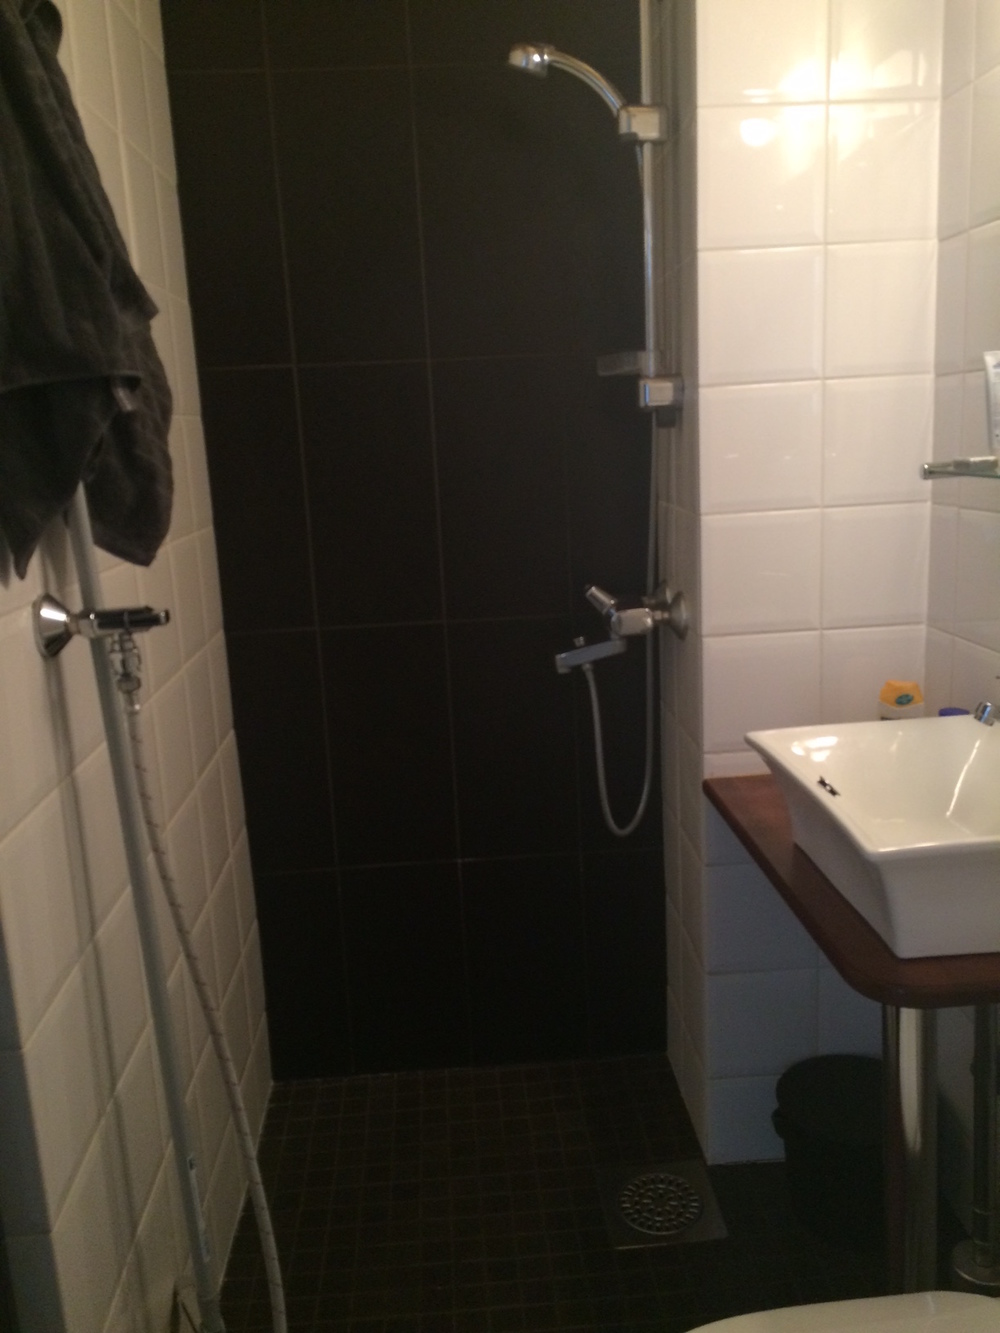 No shower curtain?  No problem.  PS.  This is our bathroom in Helsinki which is enormous compared to Copenhagen.